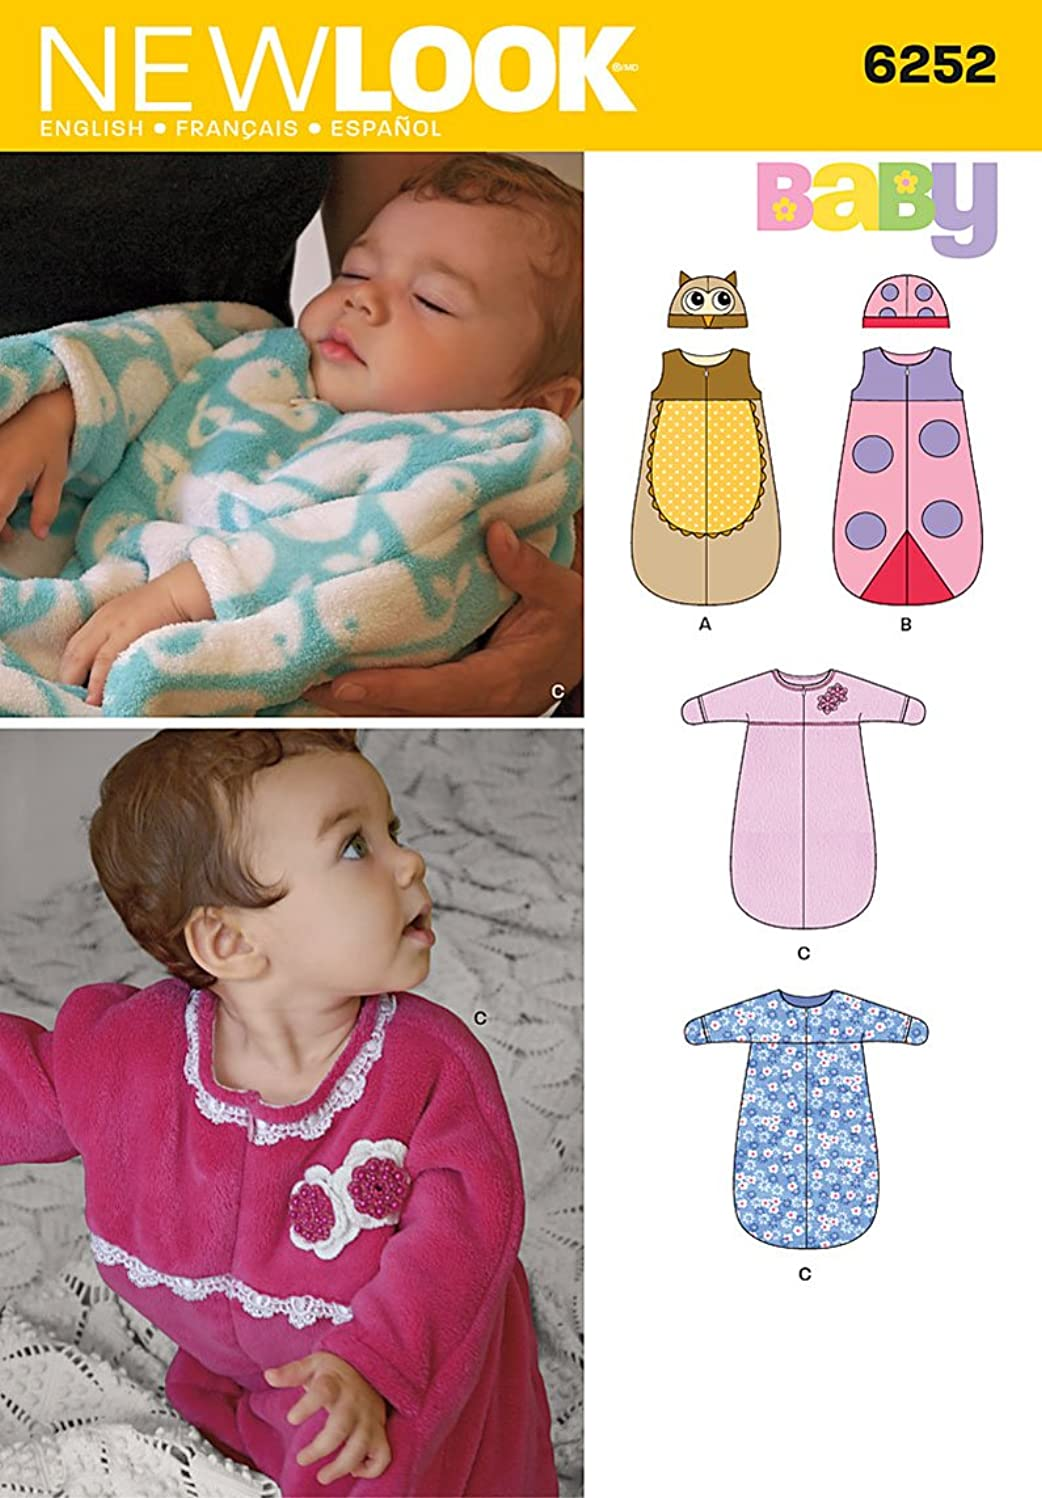 Simplicity Creative Patterns New Look 6252 Babies' Sack with or Without Sleeves and Hat, A (NB-Small-Medium-Large)